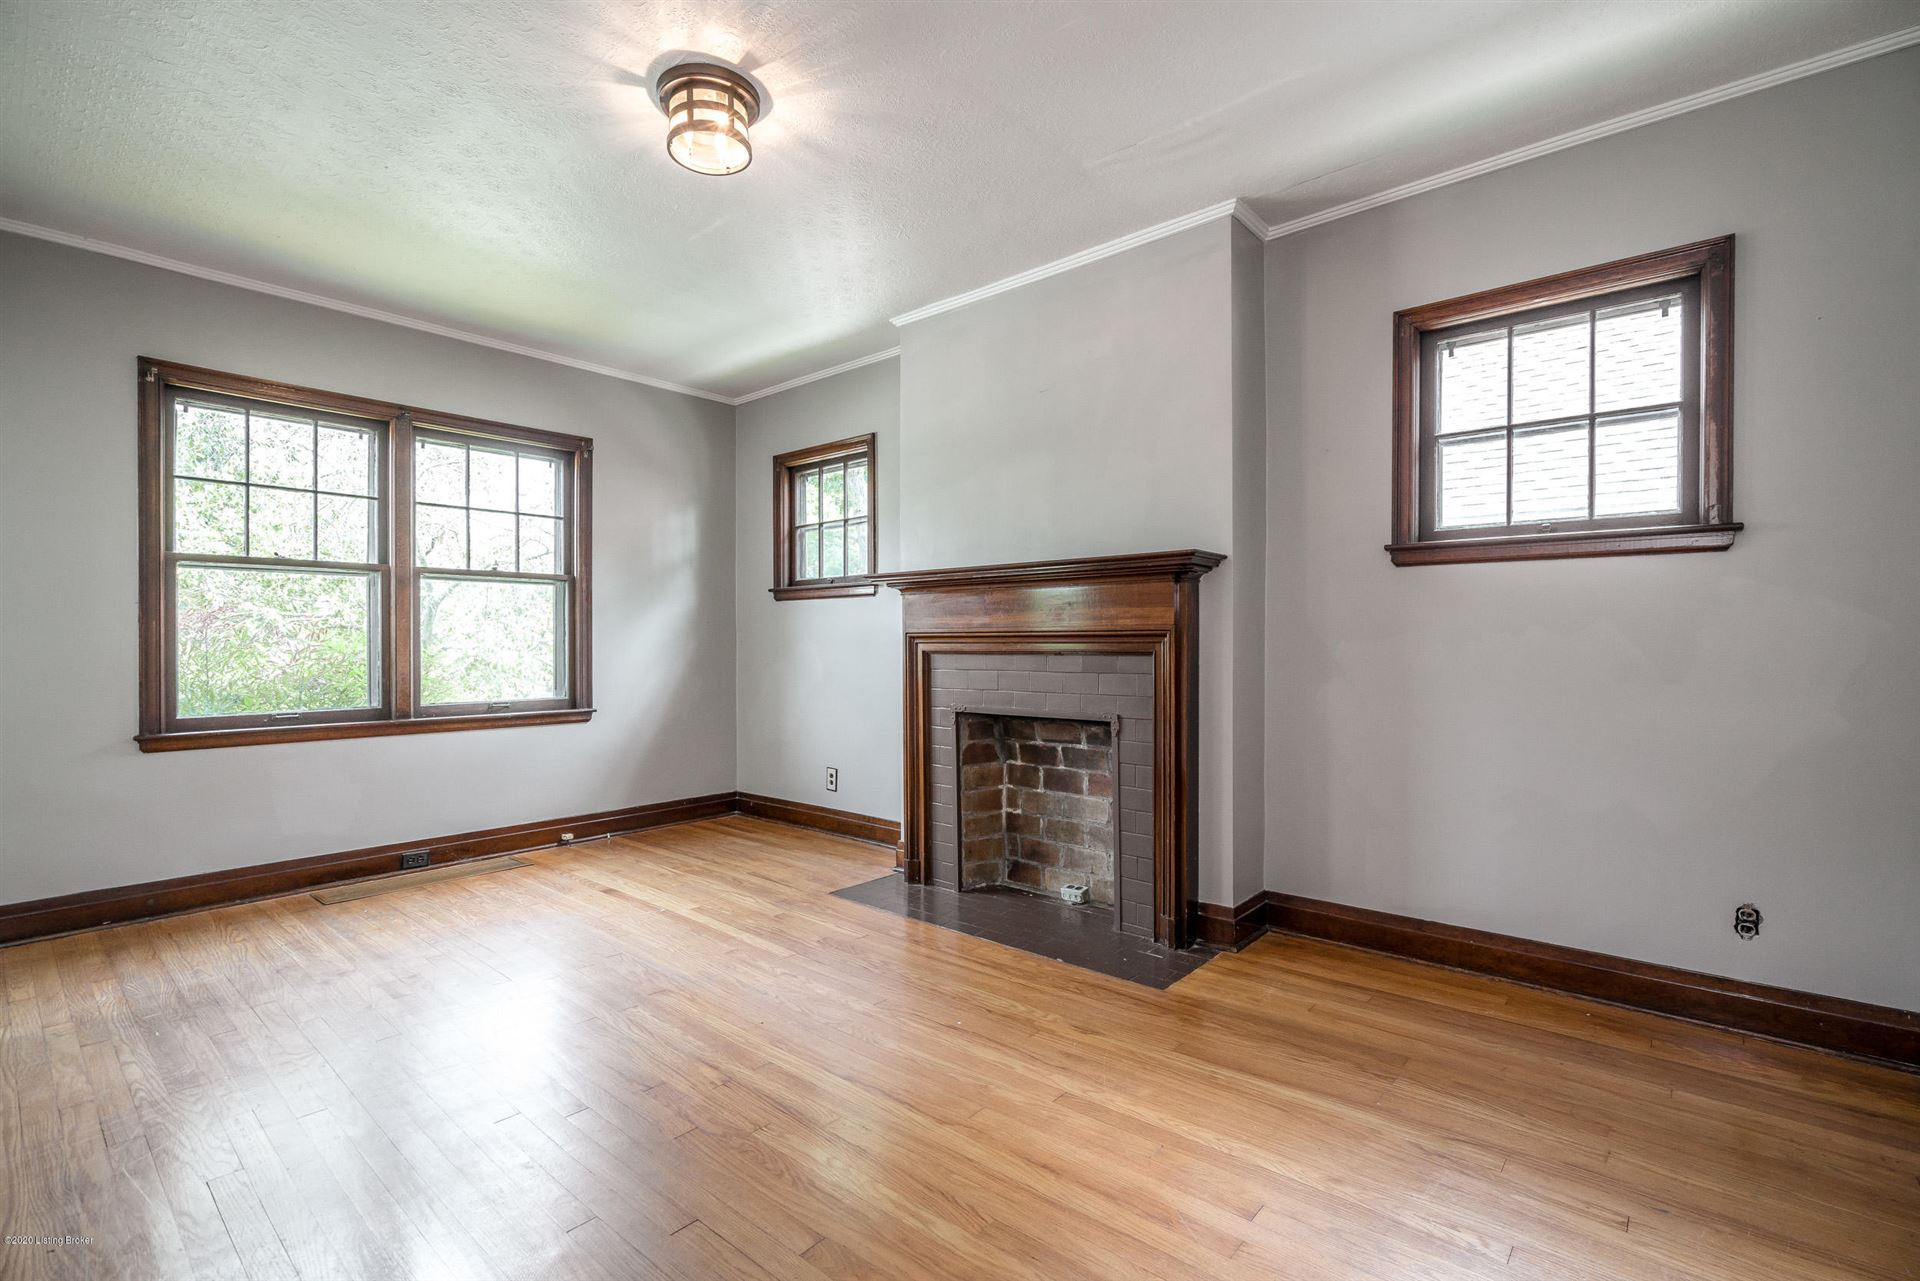 Property Image Of 1058 Highland Ave In Louisville, Ky